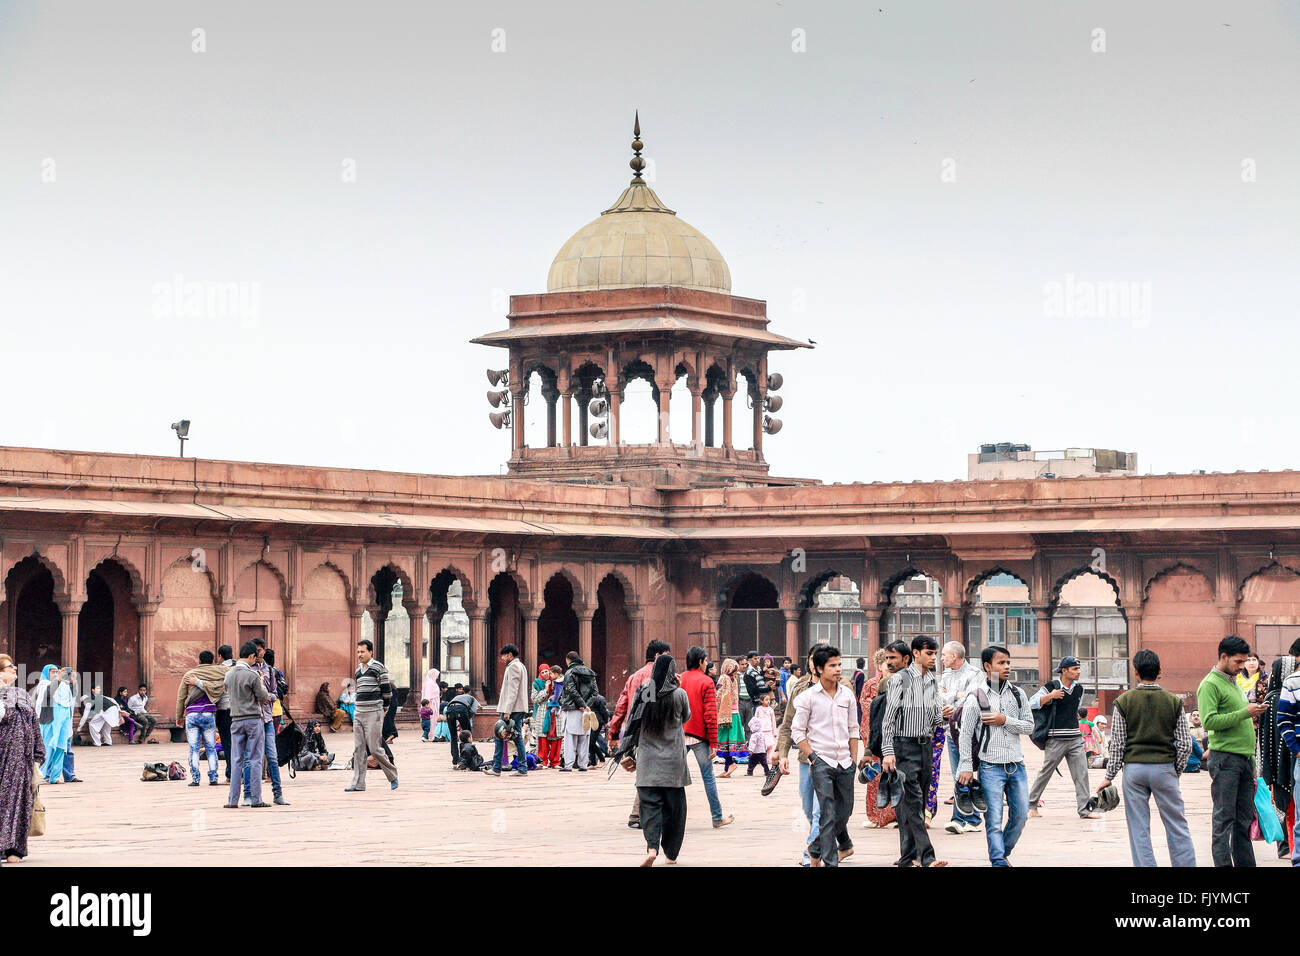 red fort delhi stock photos red fort delhi stock images alamy. Black Bedroom Furniture Sets. Home Design Ideas